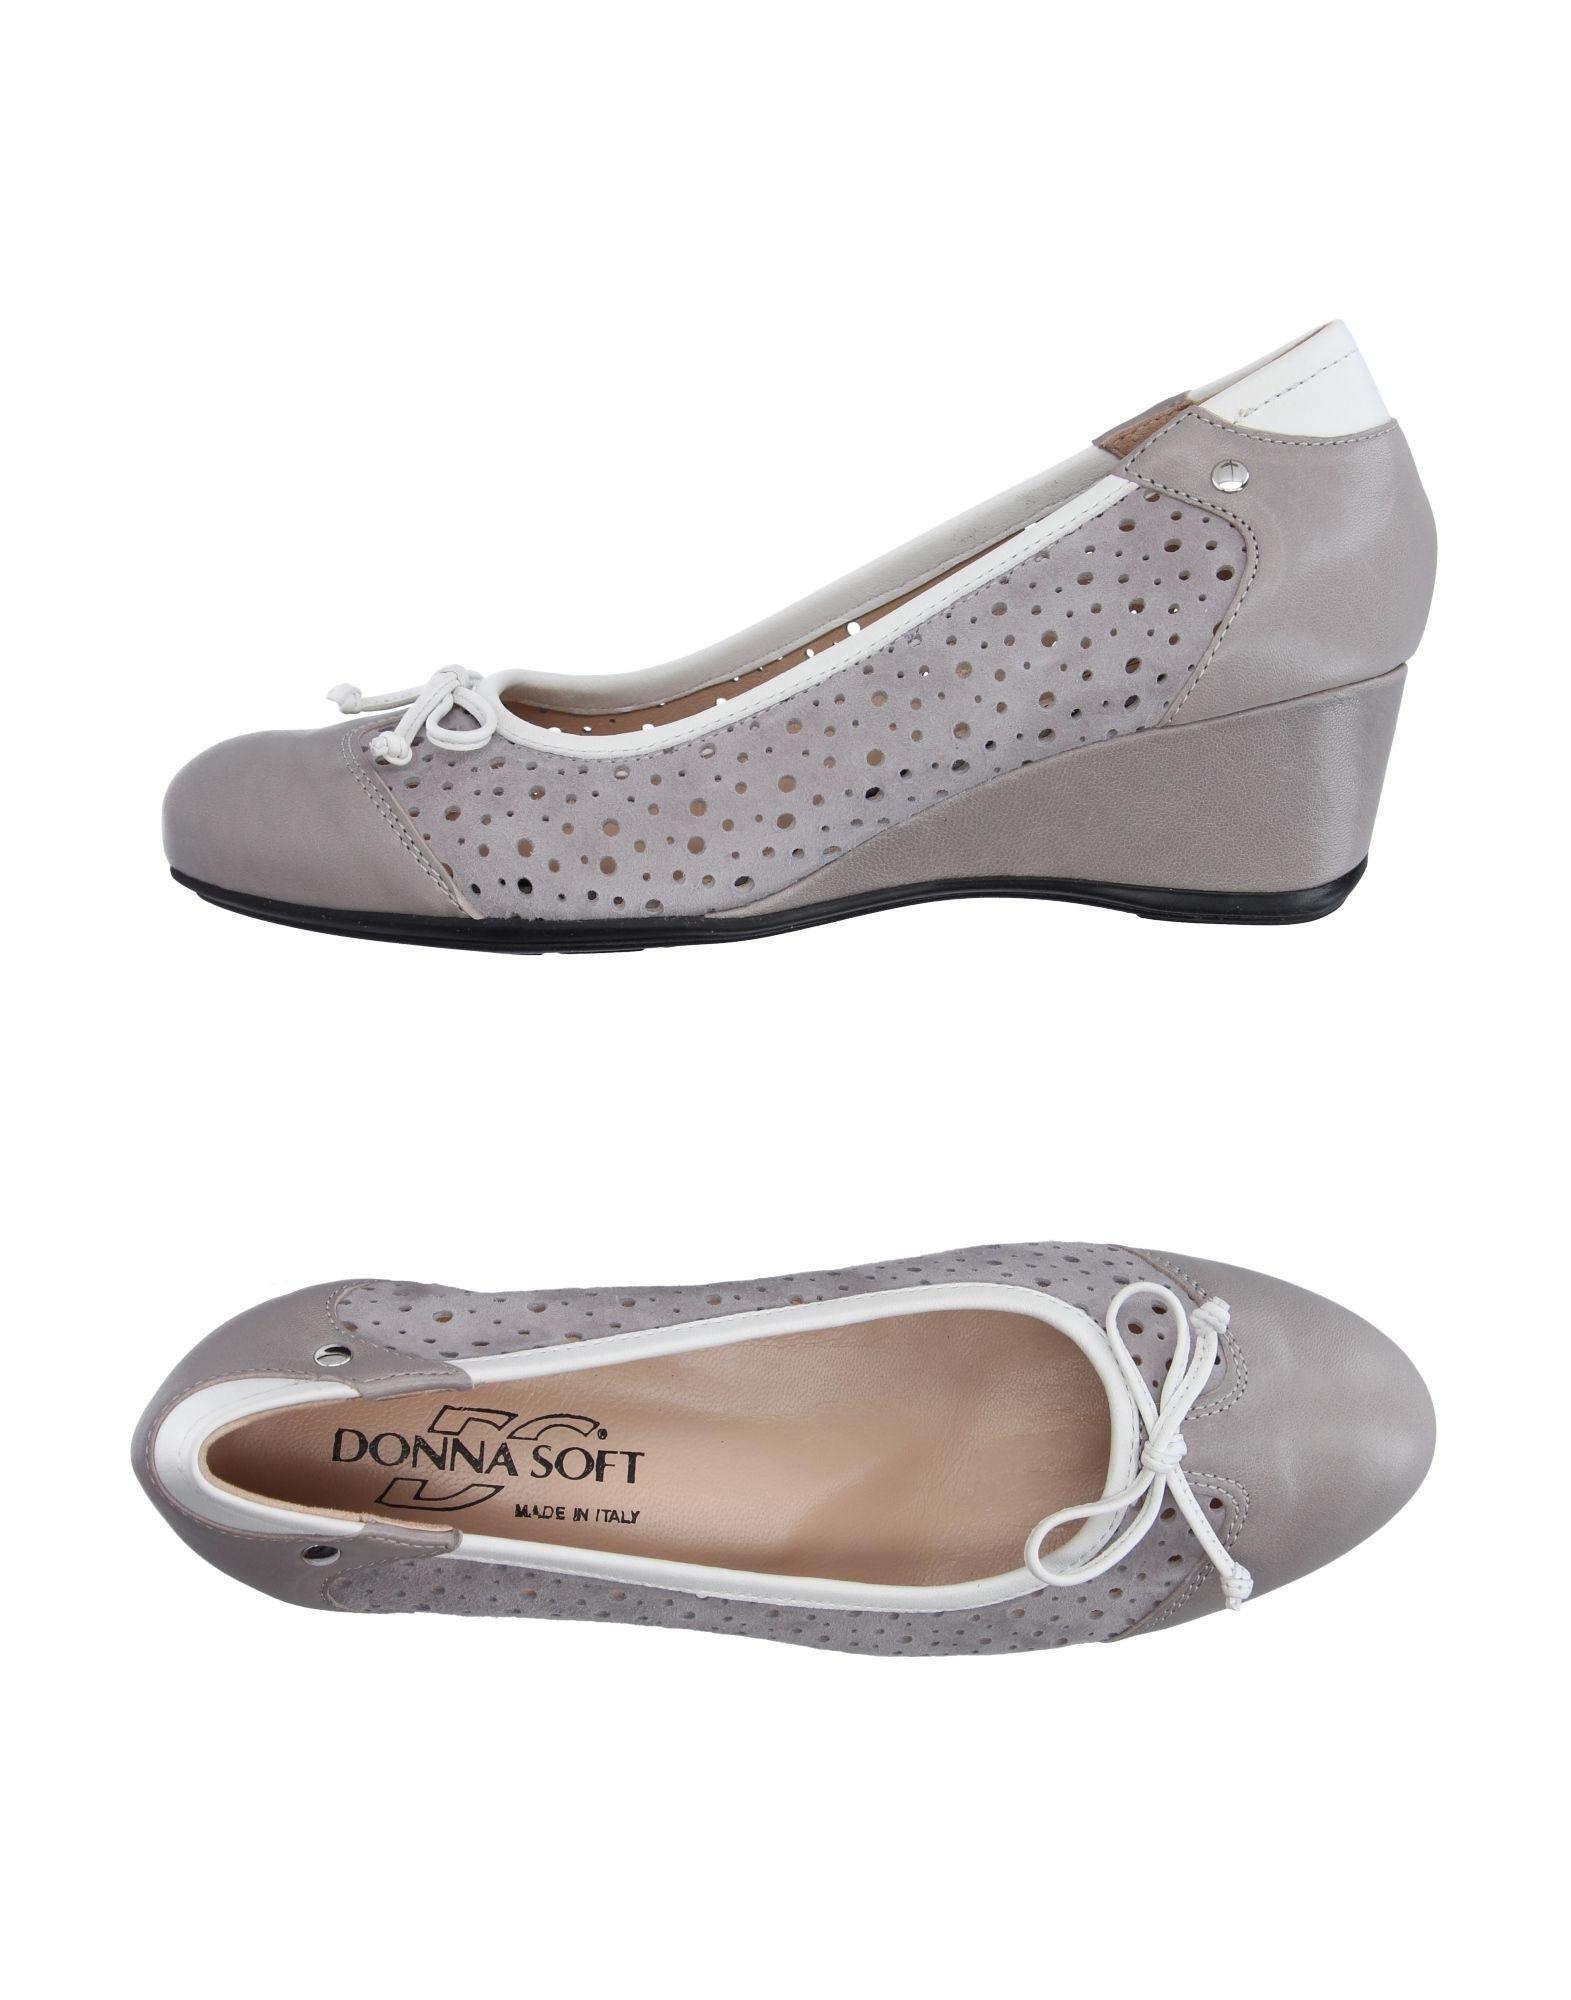 FOOTWEAR - Courts Donna Soft